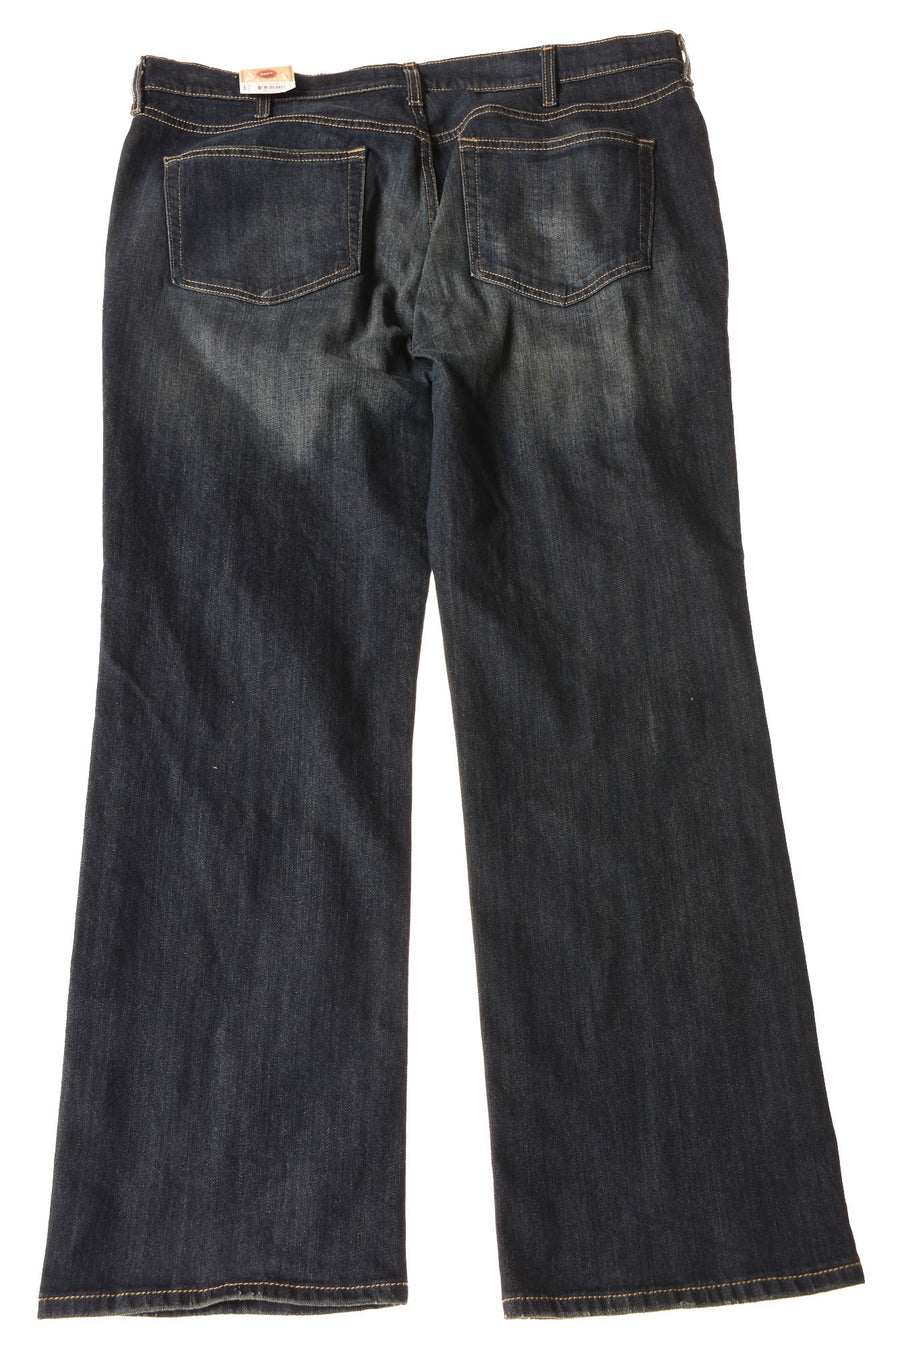 NEW Urban Pipeline Men's Pants 38 Blue